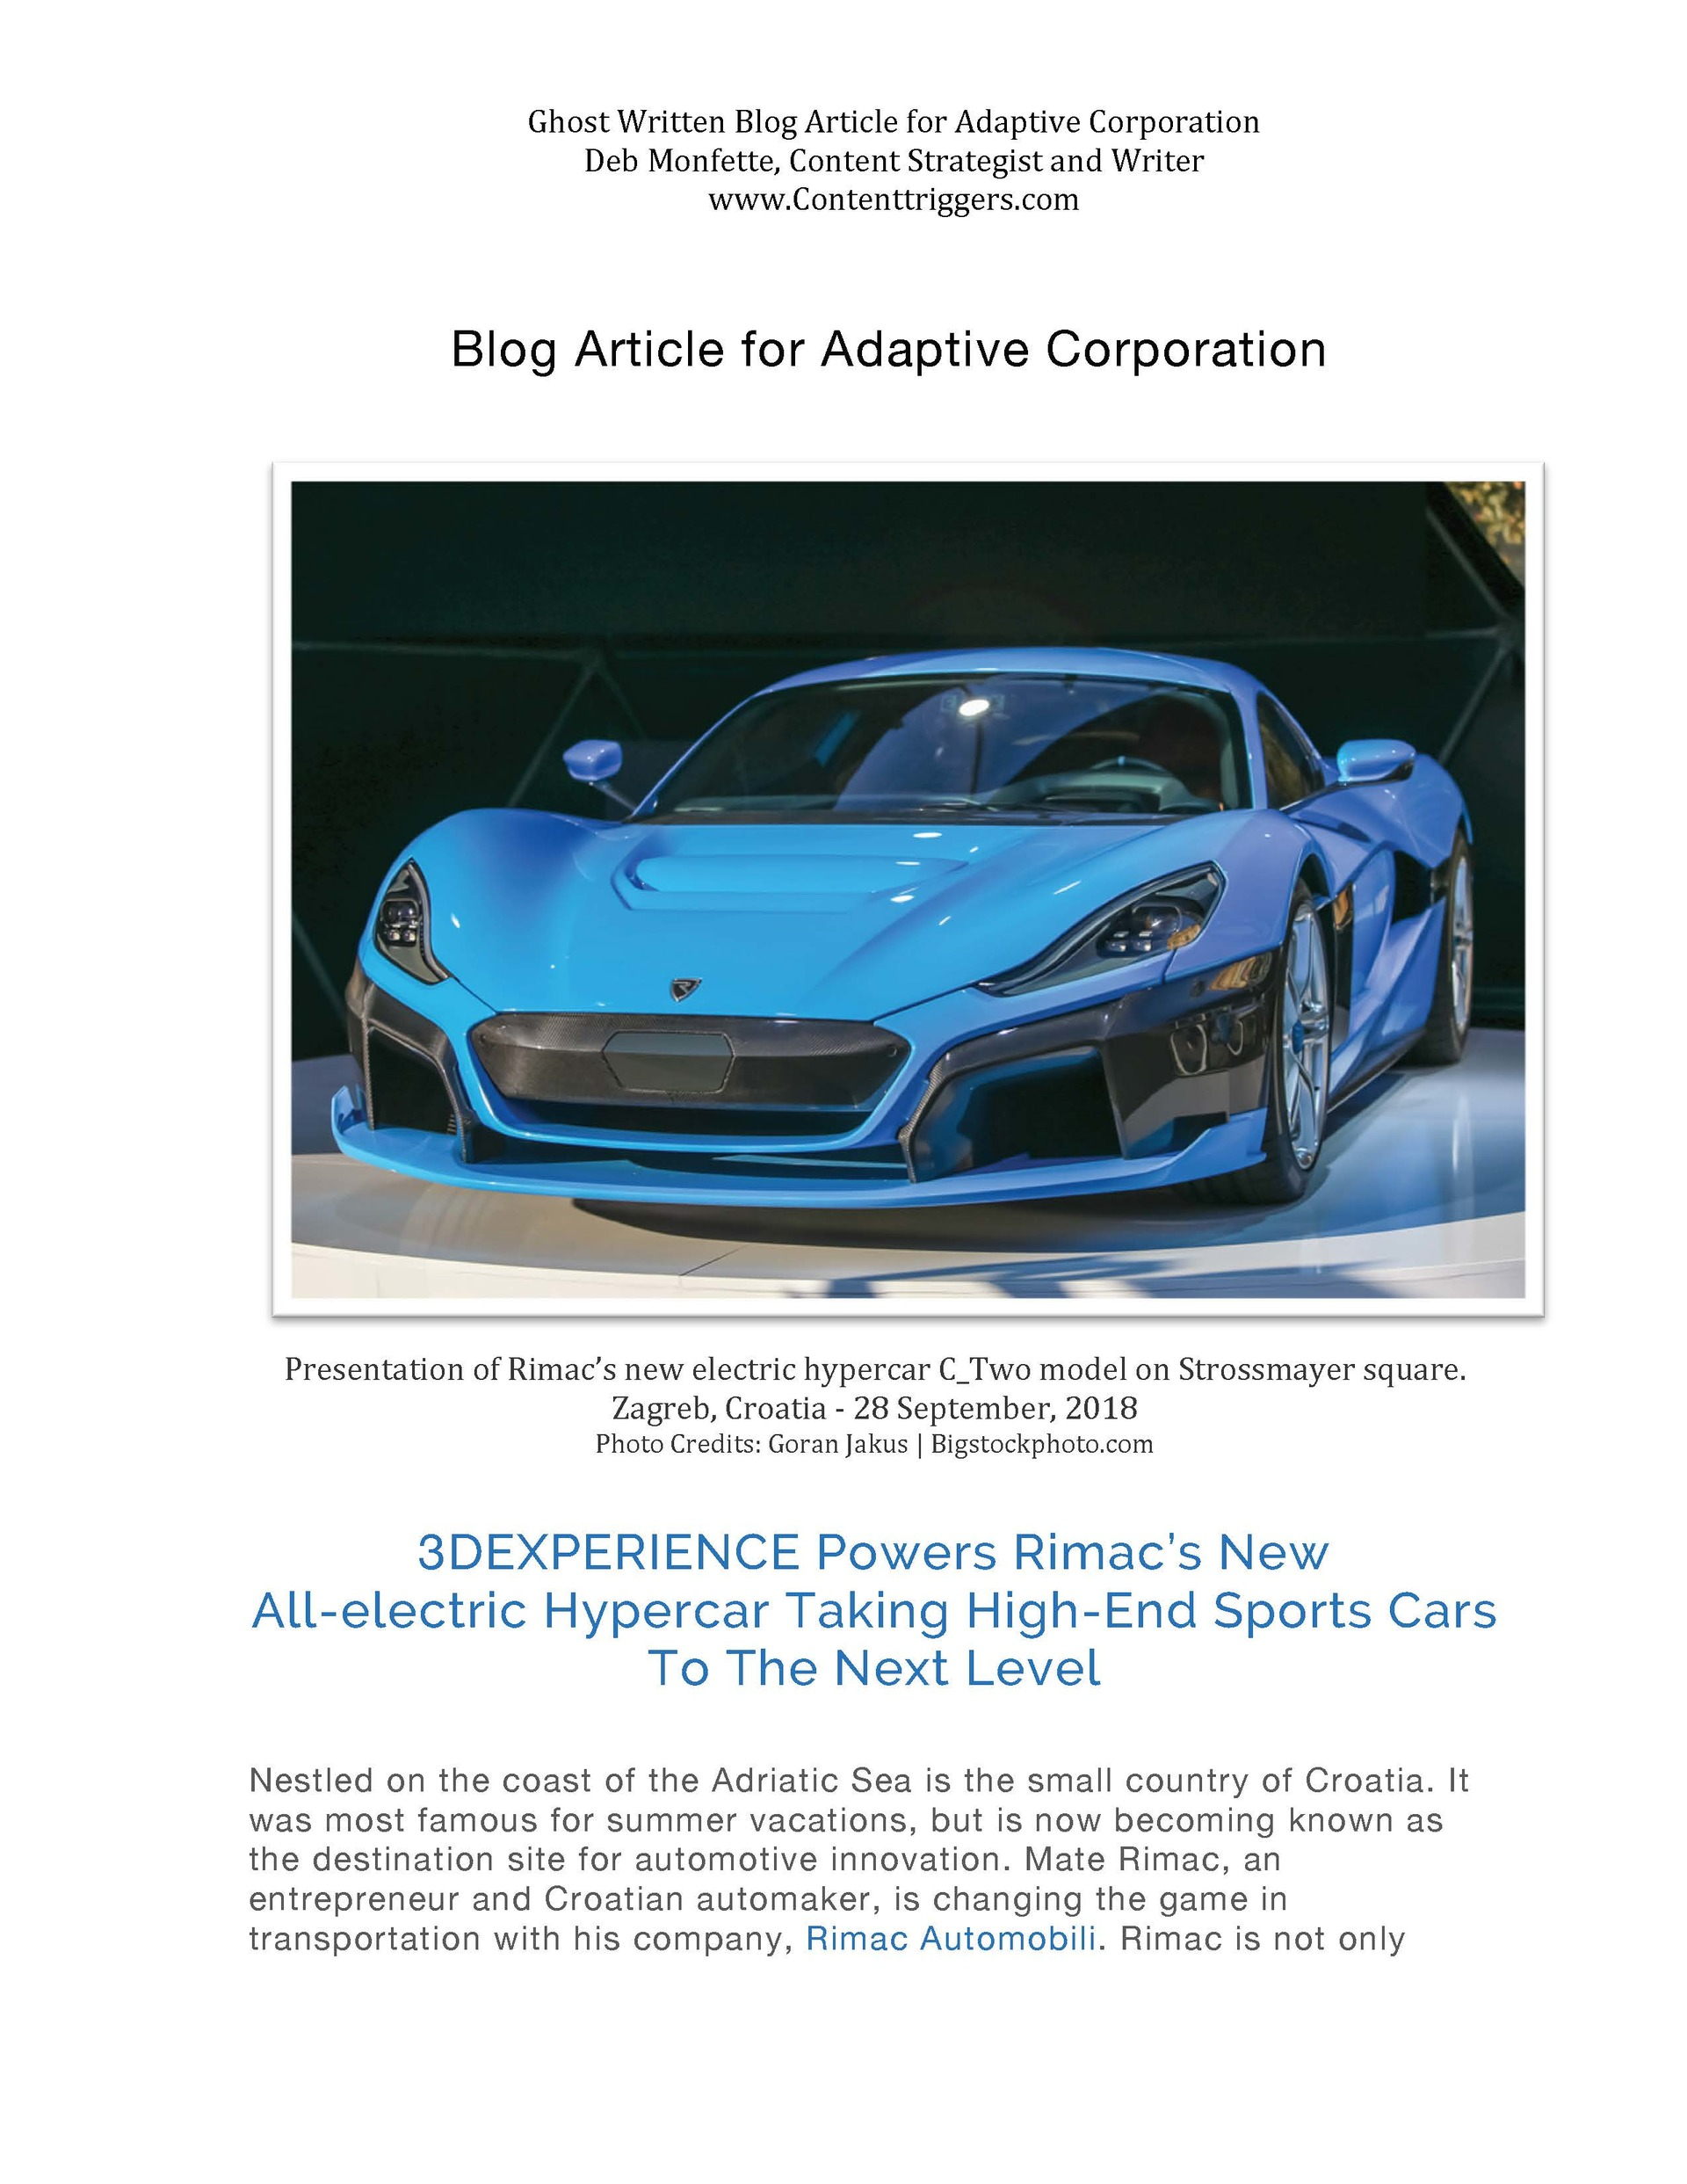 Rimac's New All-Electric Hypercar in Blue